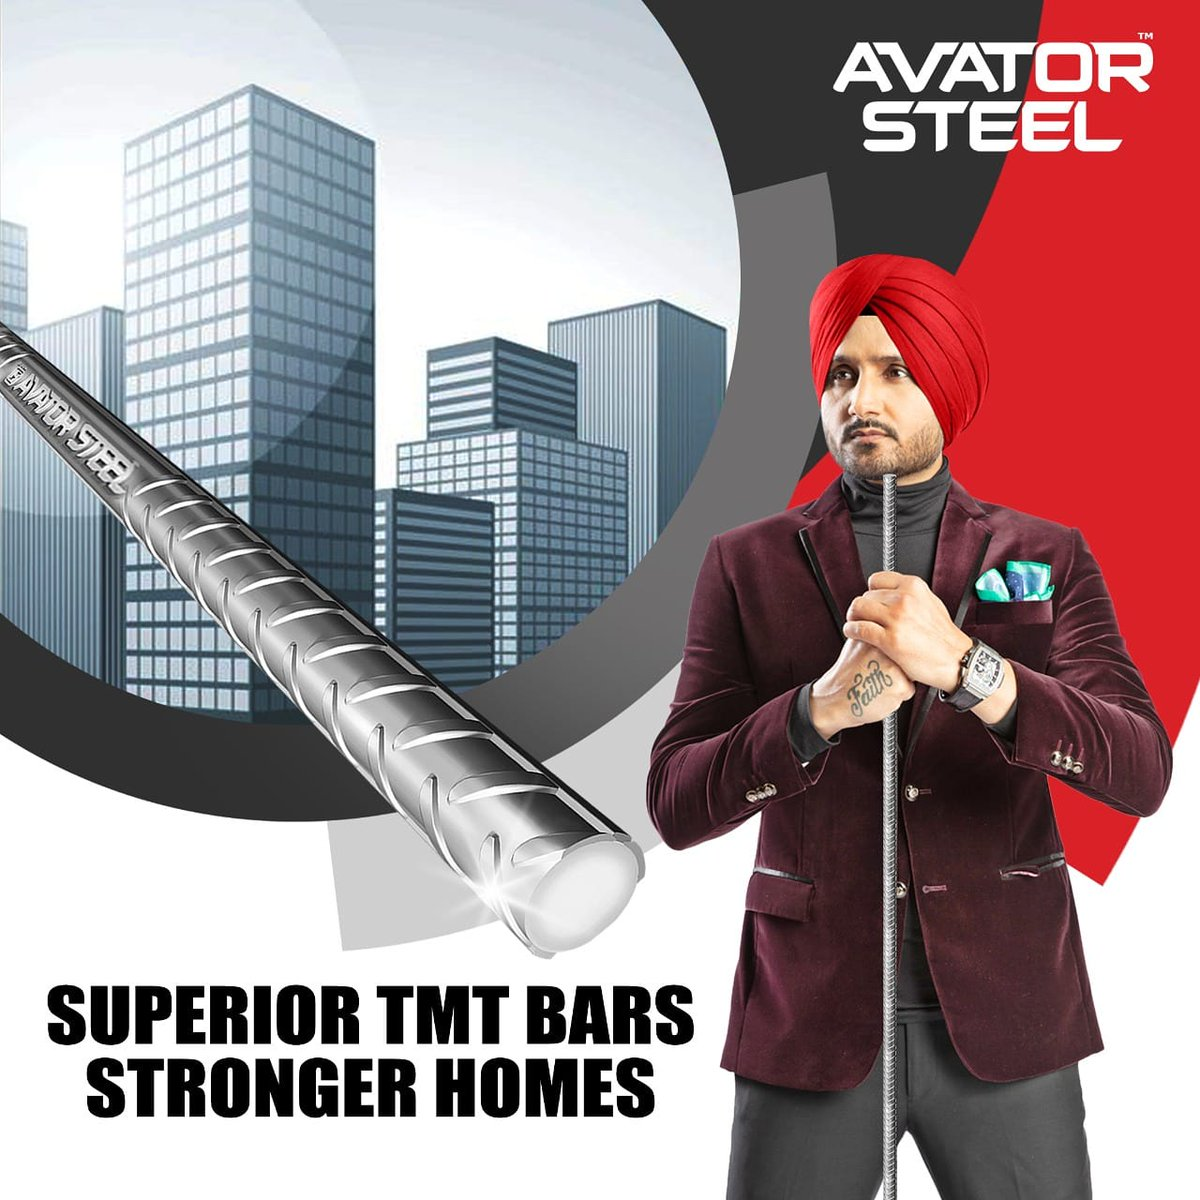 #AvatorSteel TMT bars have superior qualities which make it the best in it's domain.   So choose the best today for a better tomorrow.  #HarbhajanSingh  @harbhajan_singh